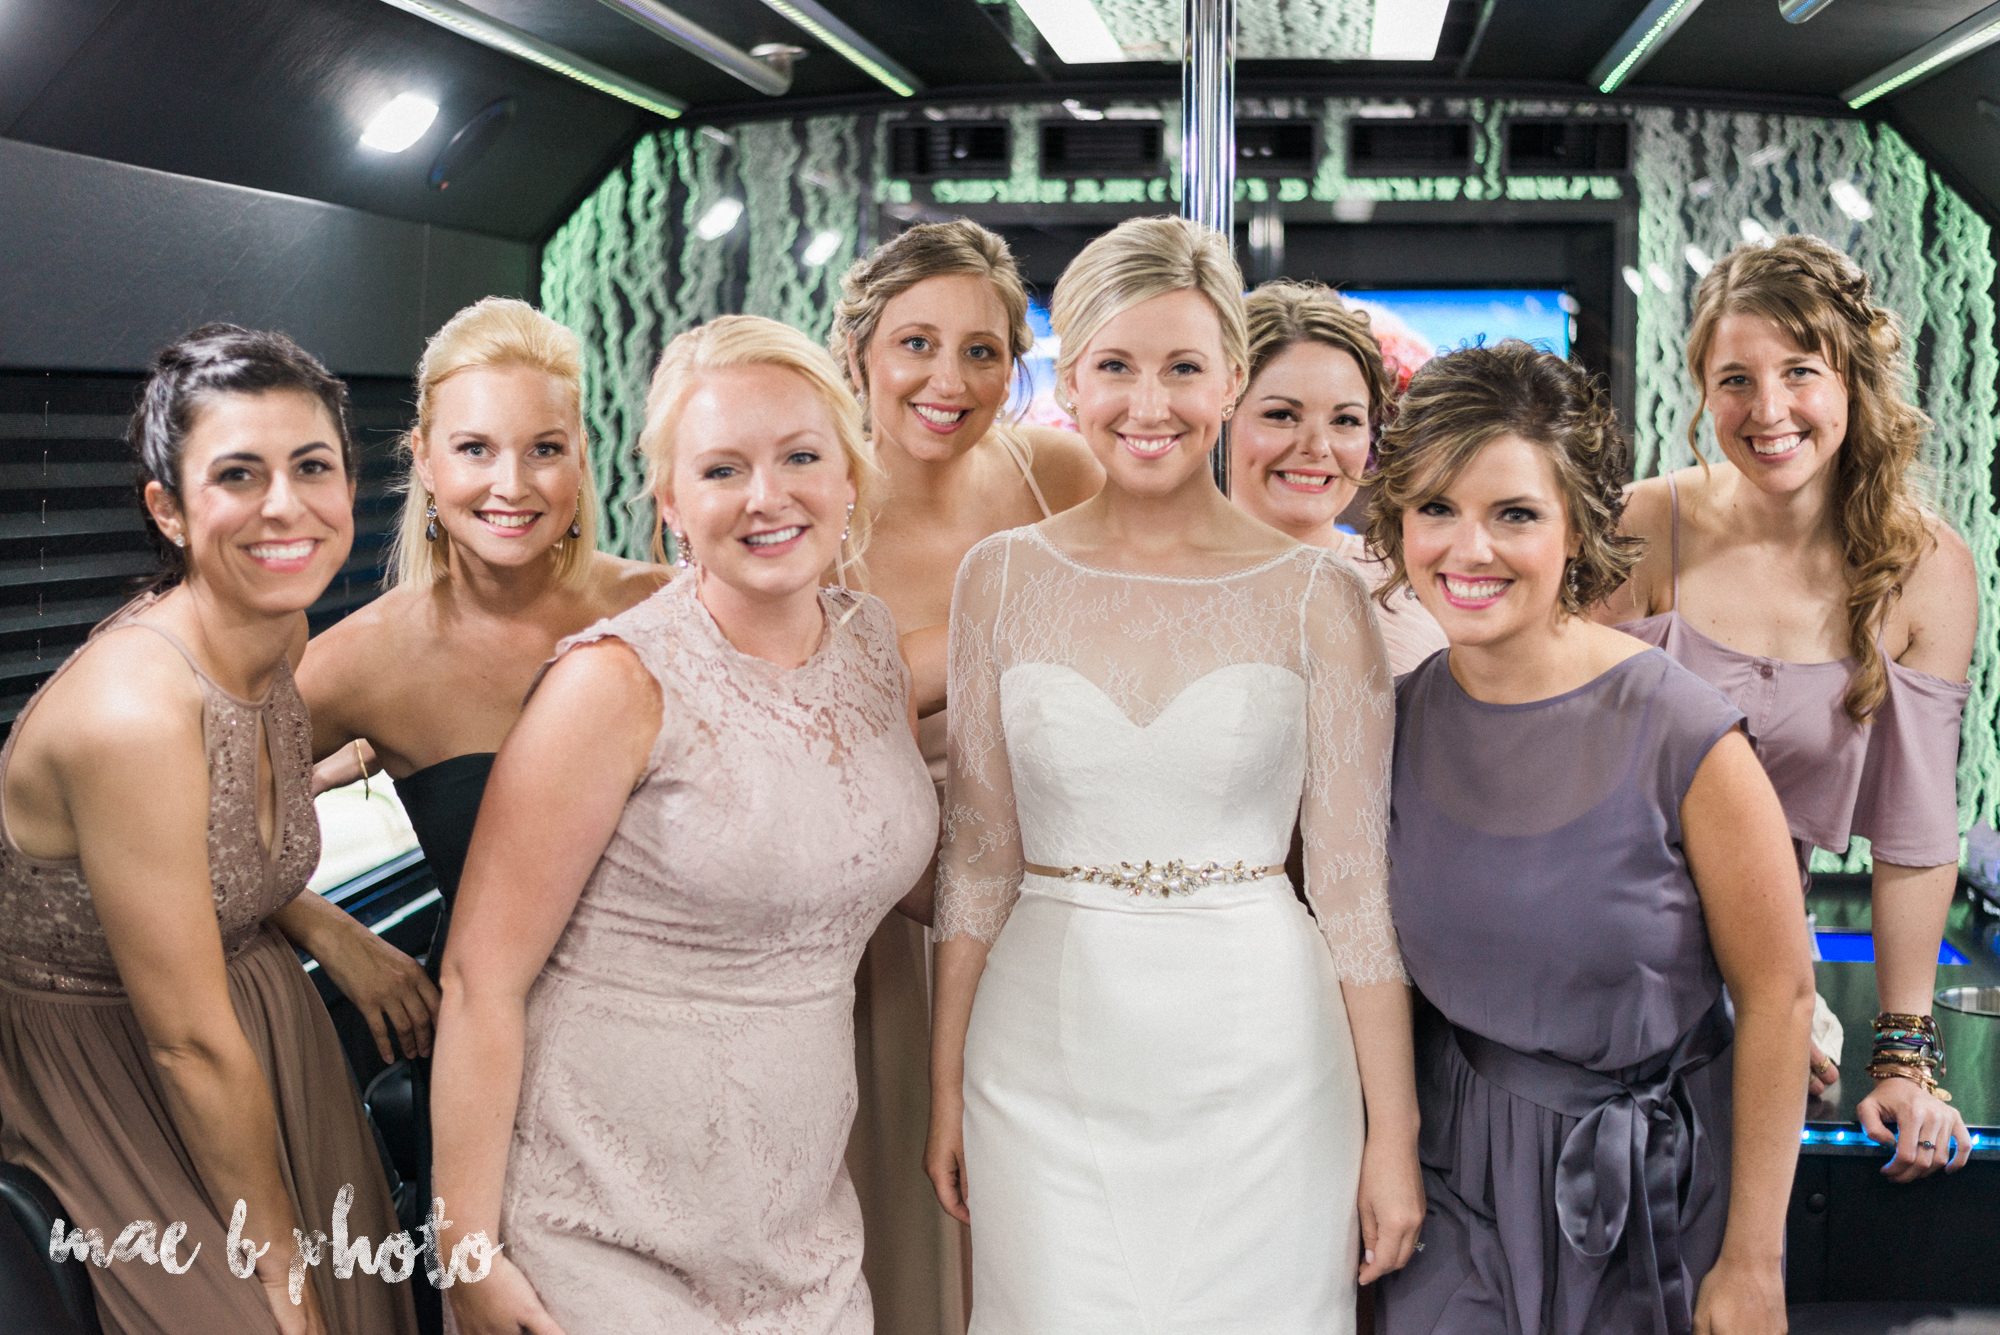 emily and michael's industrial chic summer country club wedding at the lake club in poland ohio photographed by cleveland wedding photographer mae b photo-48.jpg